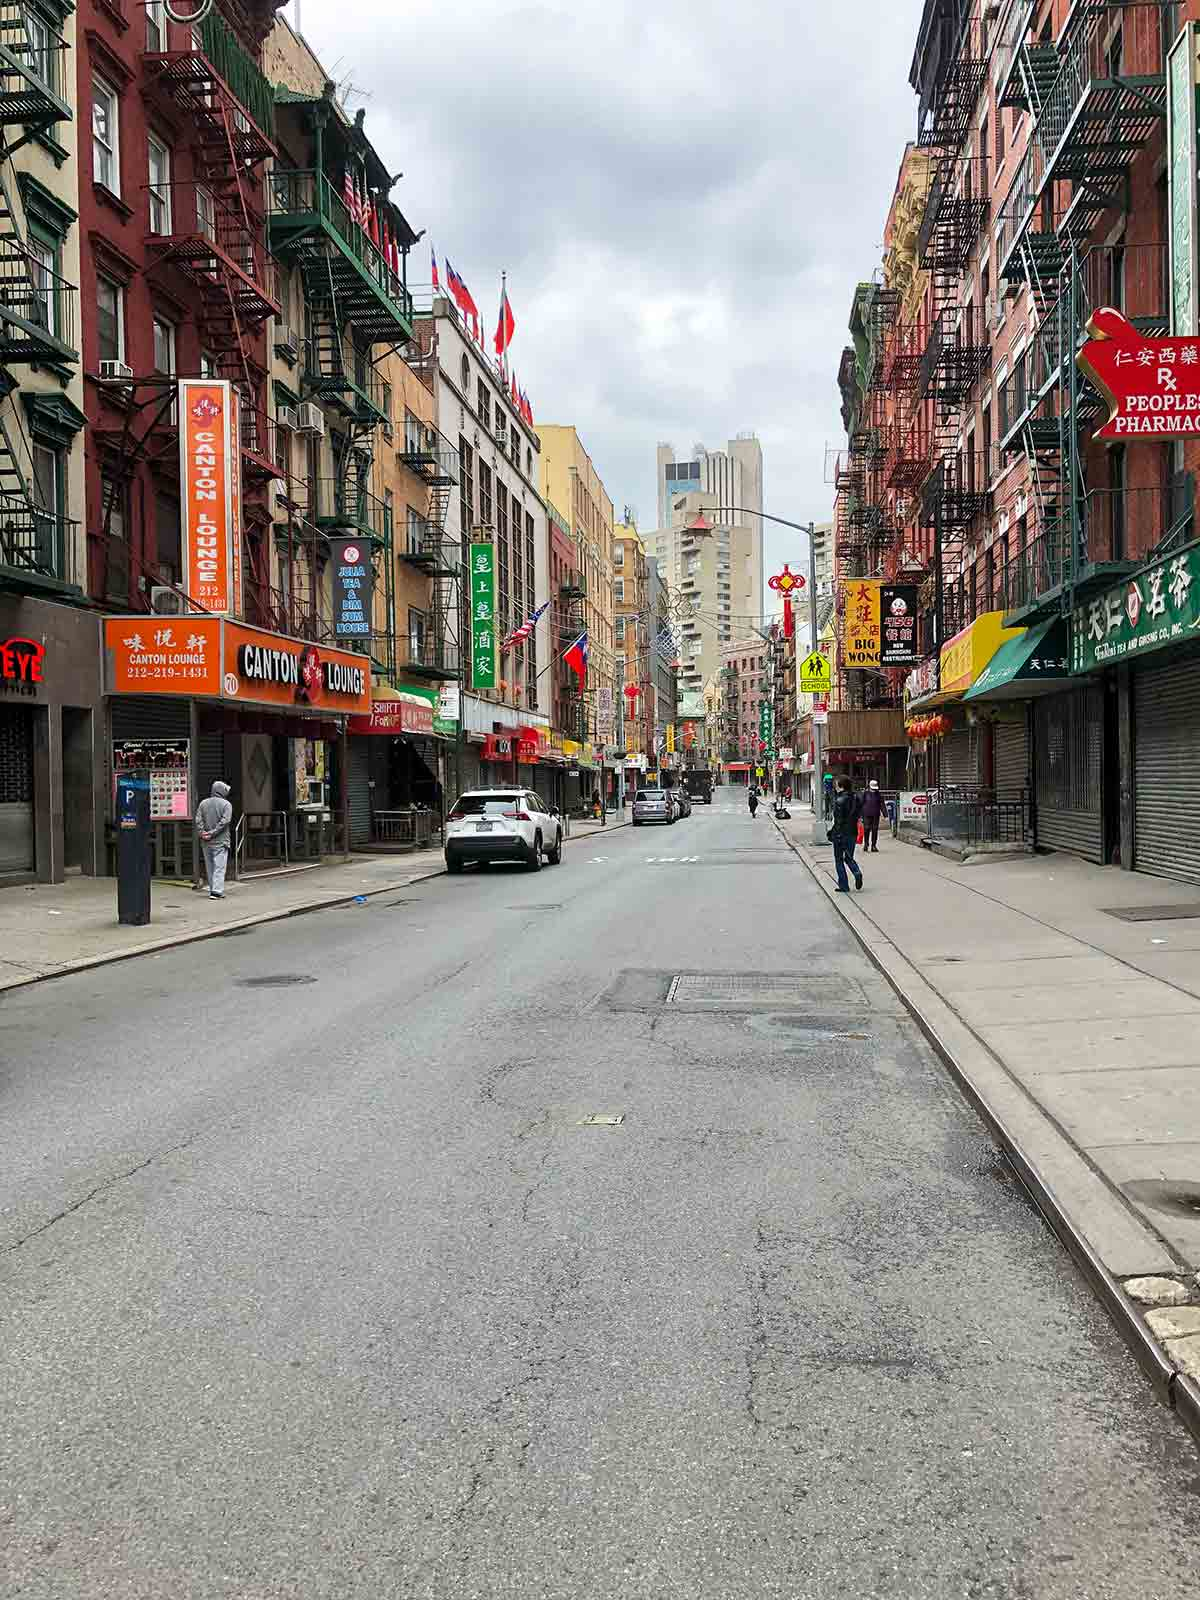 An empty street in Chinatown for the podcast Ep. 31: Grace Young: Coronavirus: Chinatown Stories